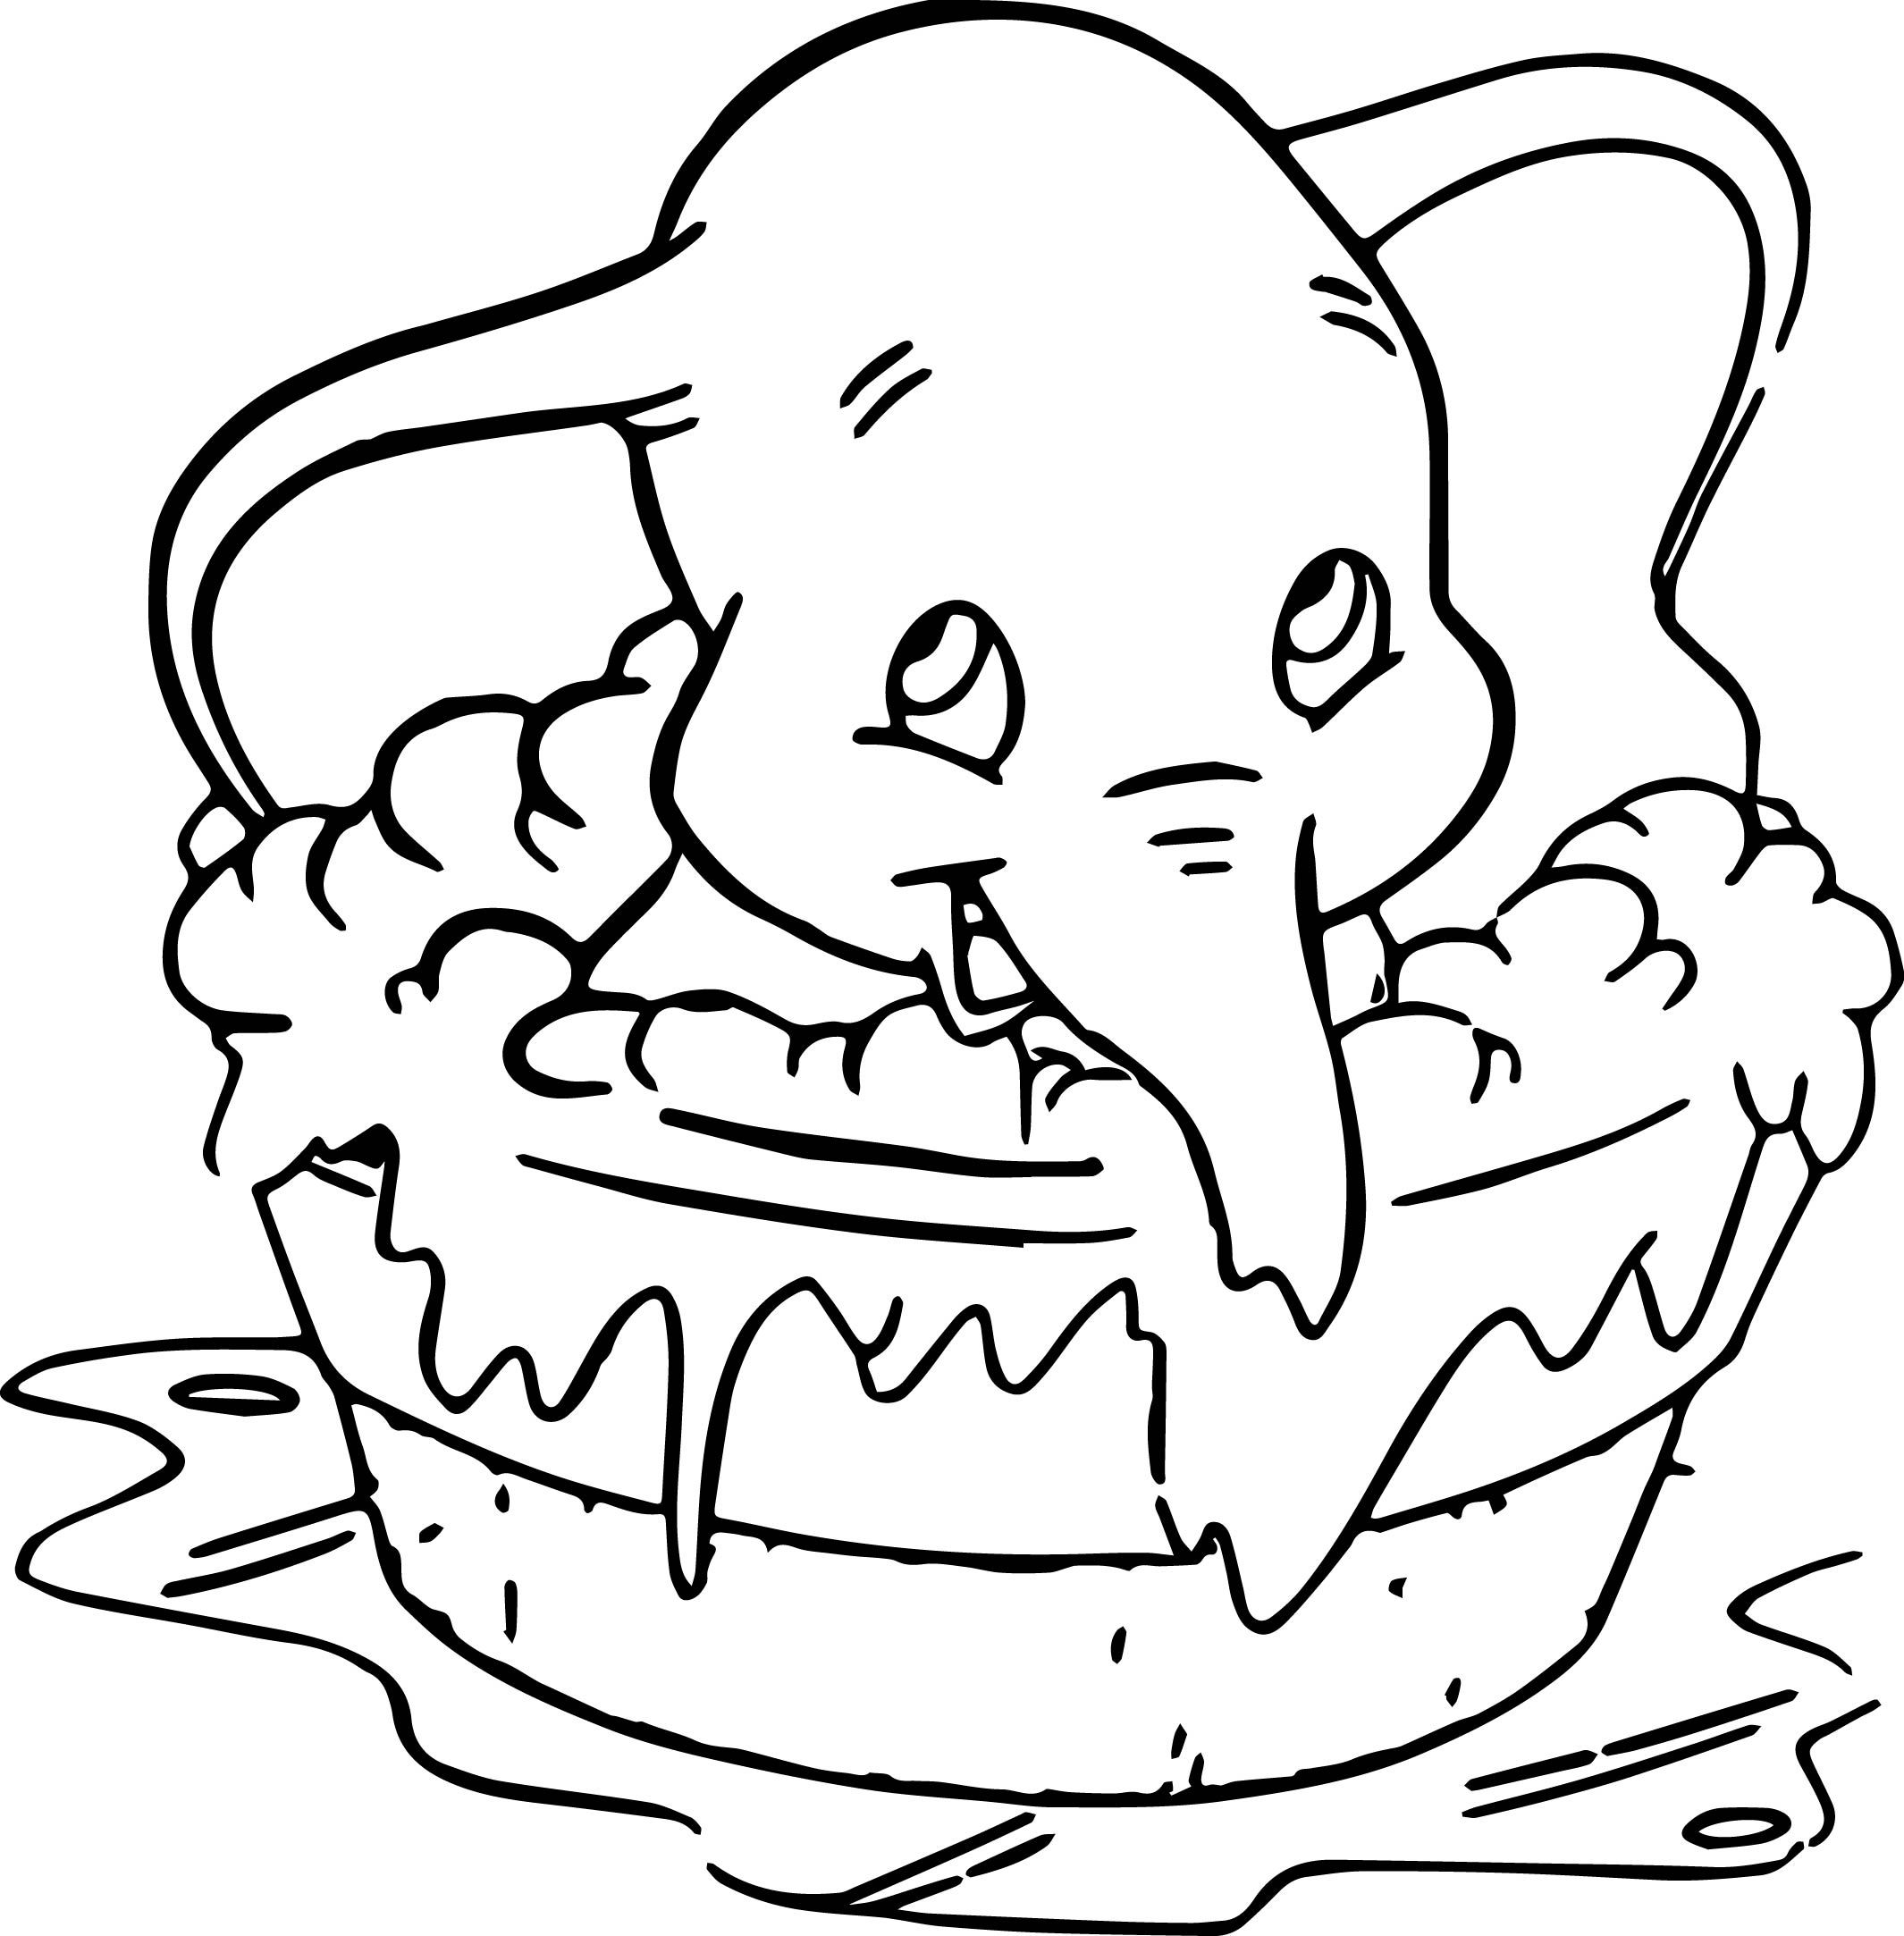 disney dumbo coloring pages dumbo coloring pages download and print dumbo coloring pages pages disney dumbo coloring